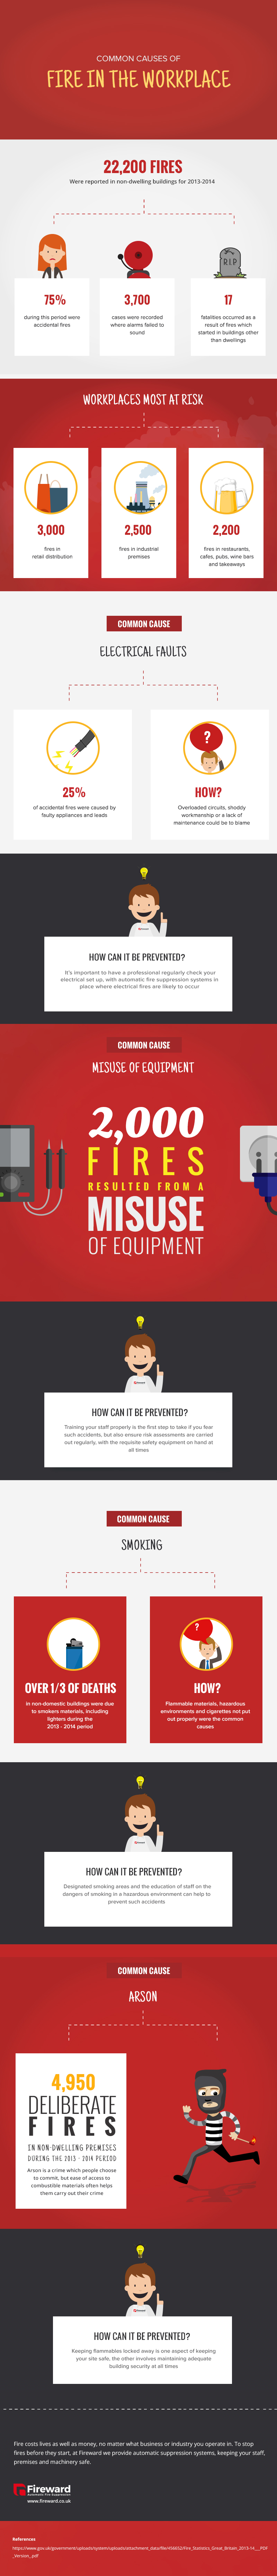 workplace fires infographic